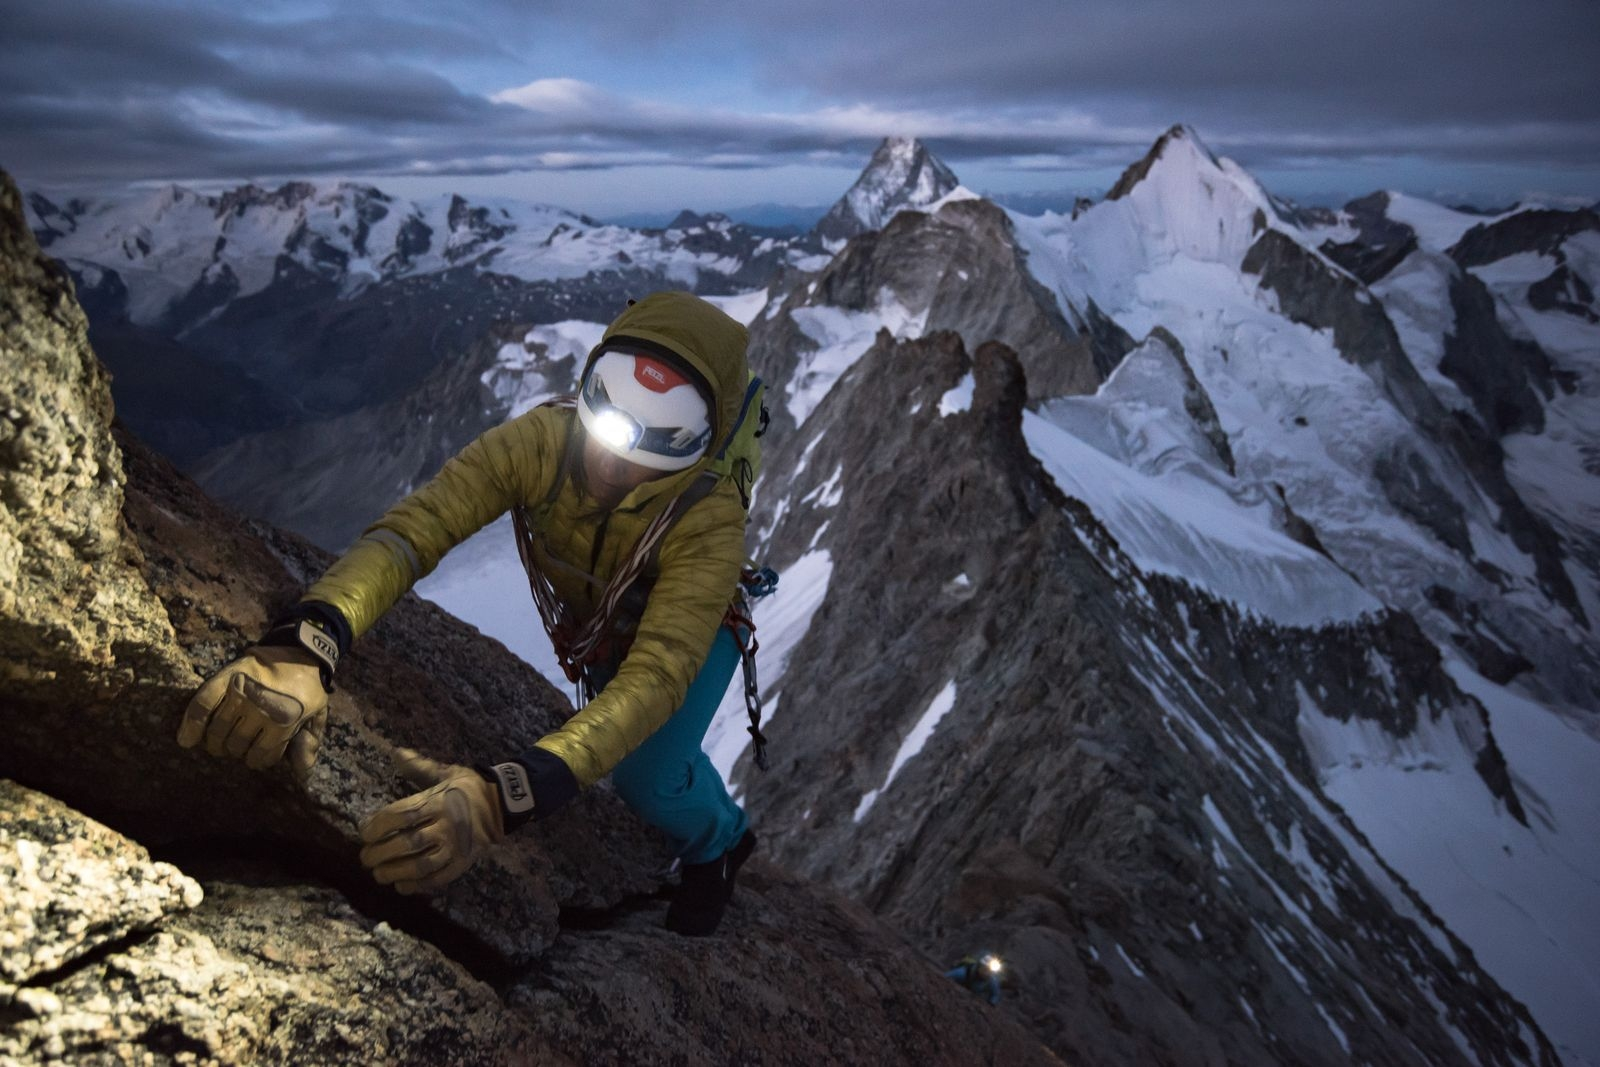 Photograph by Ben Tibbetts, National Geographic Your Shot